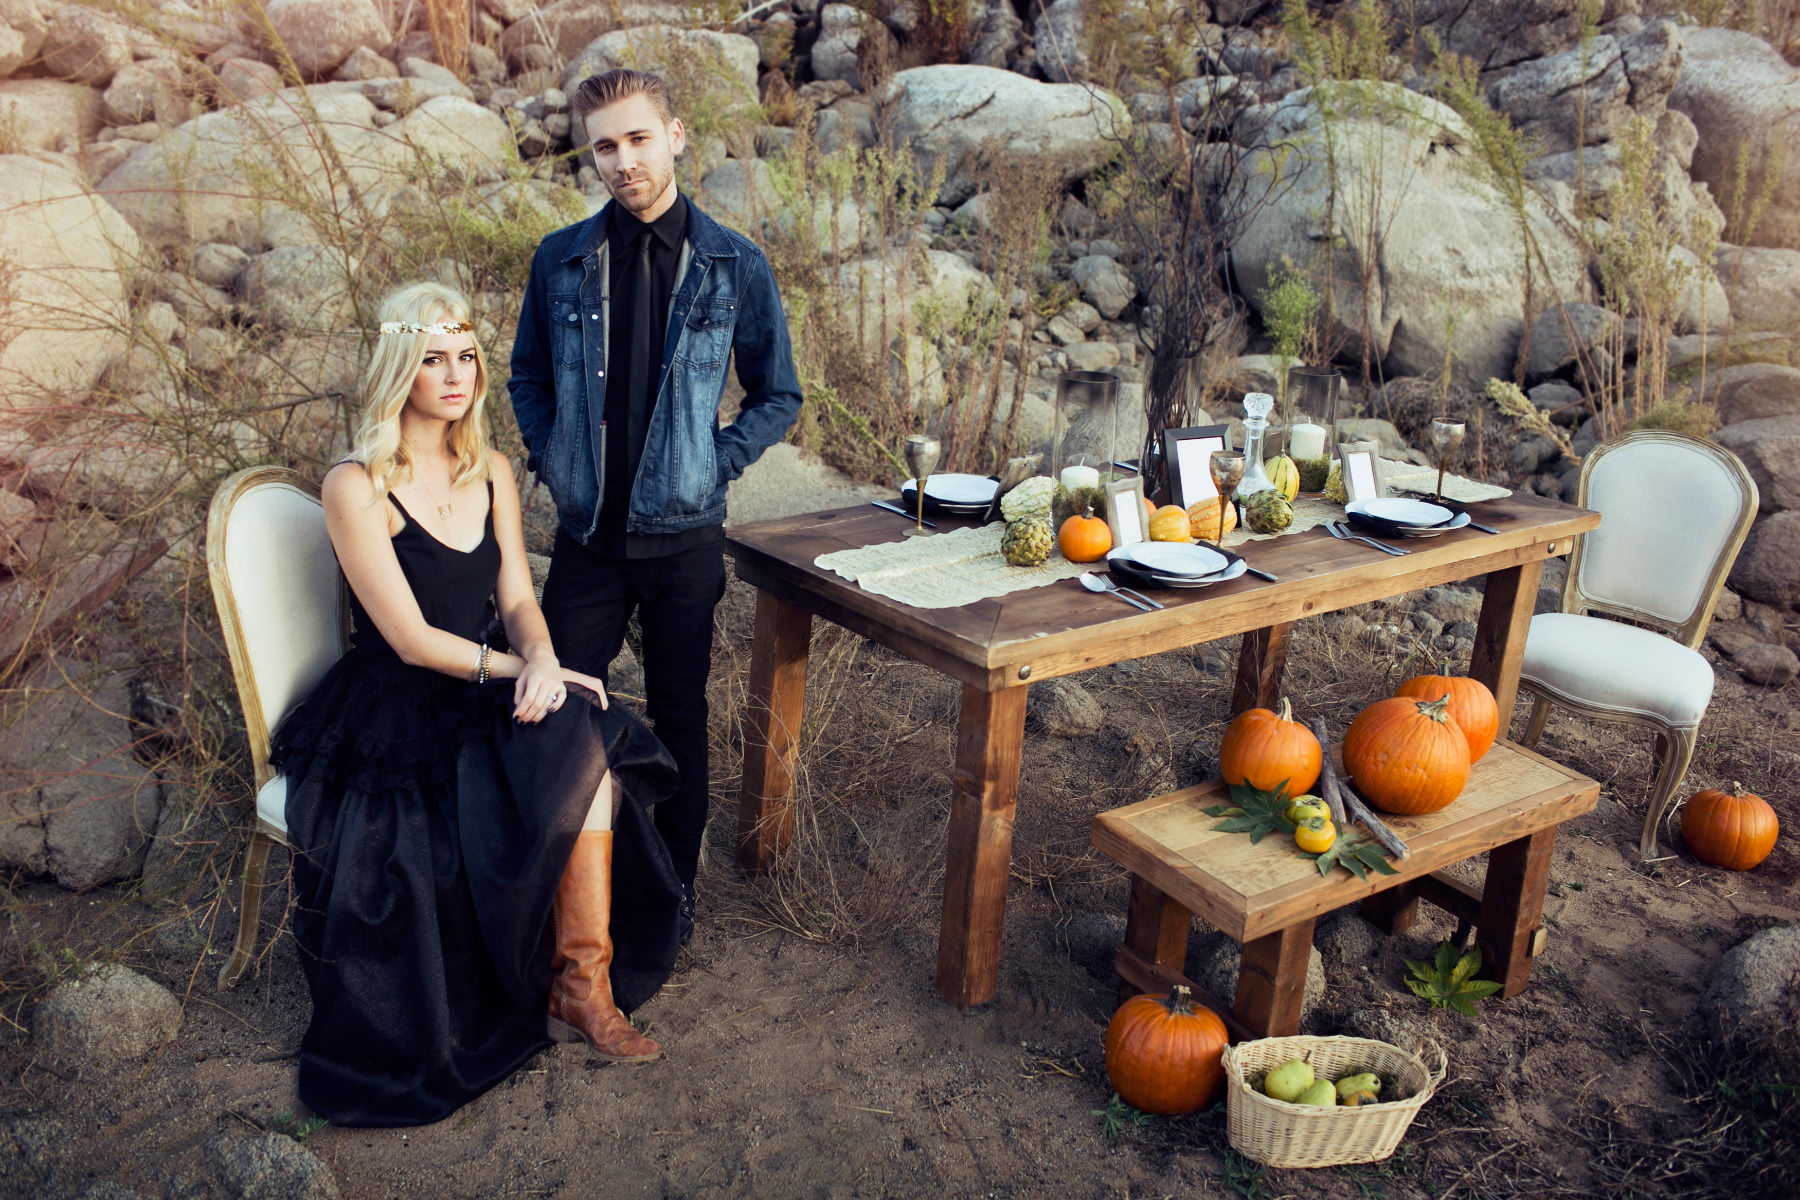 Rustic farm tables decorated for Halloween with pumpkins and harvest colors